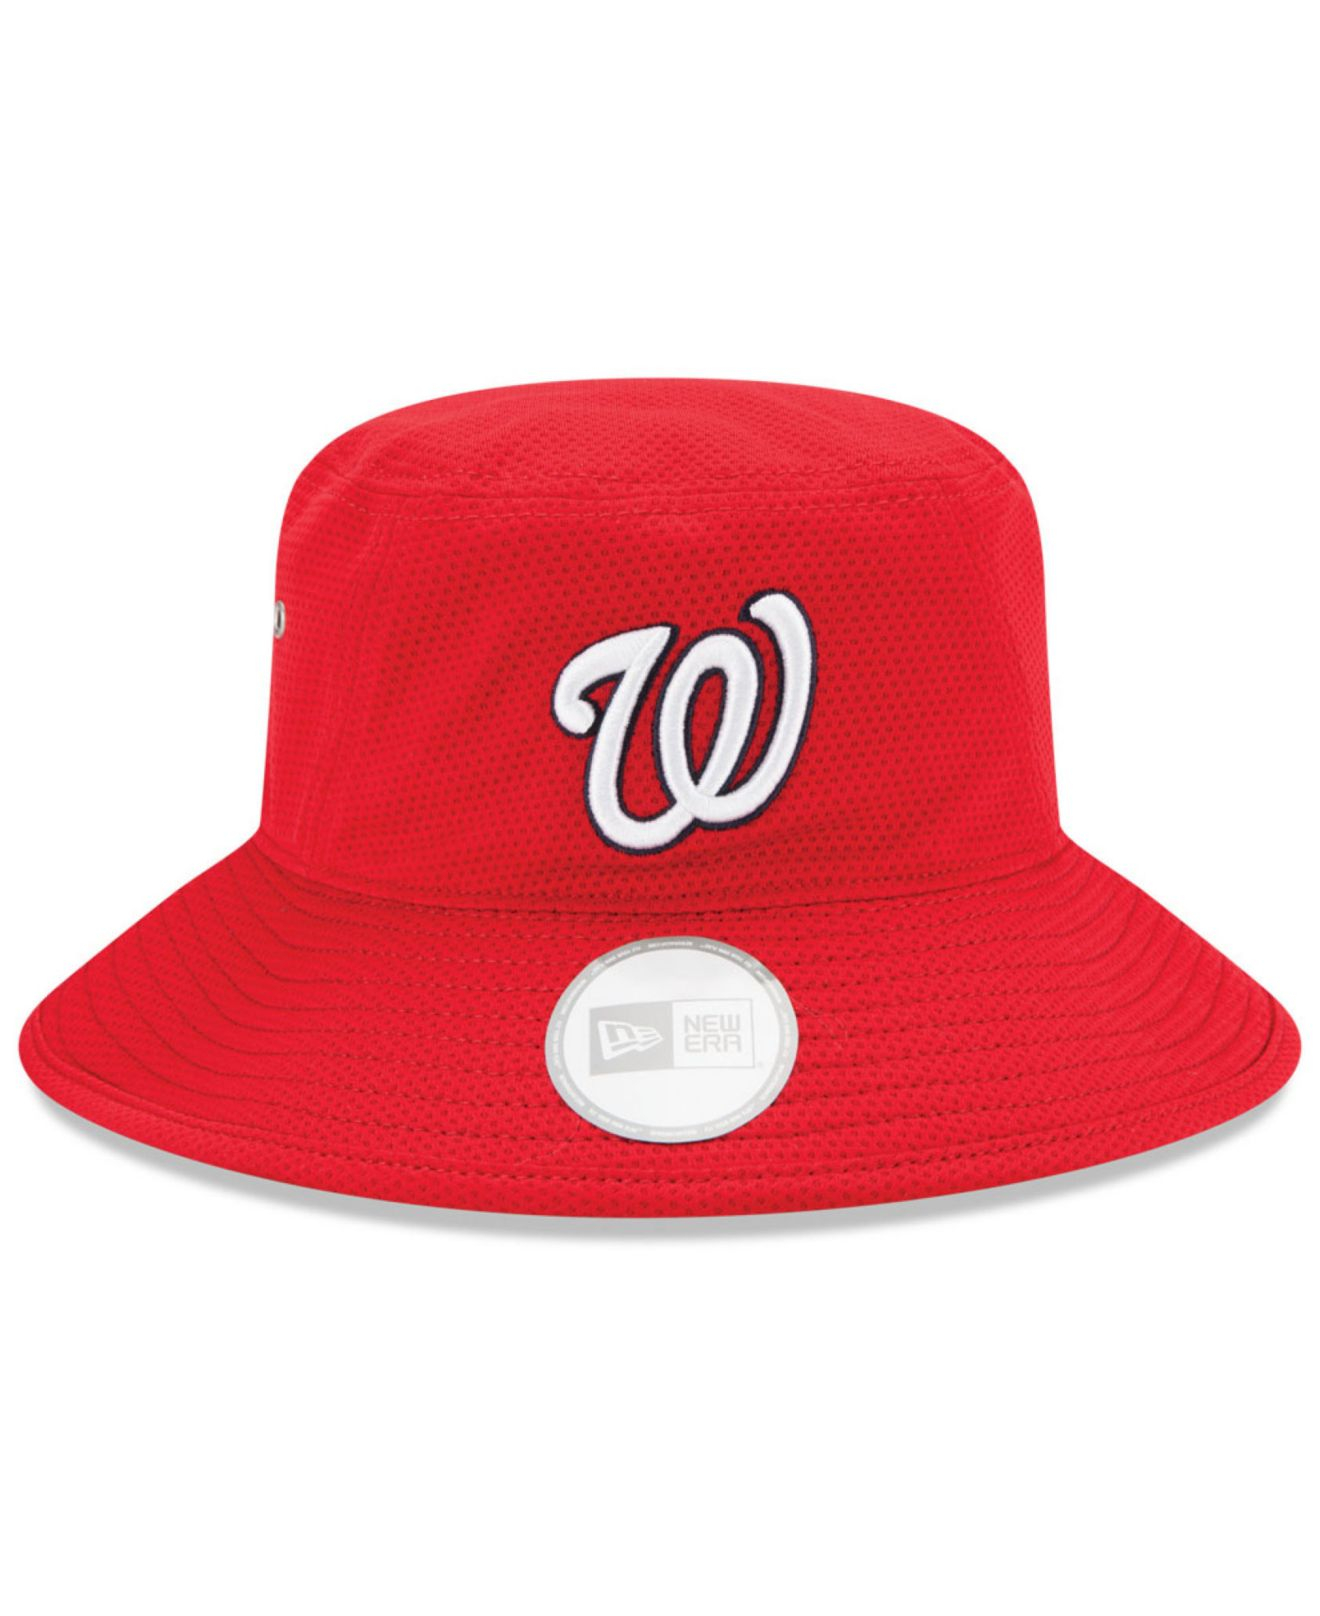 2a56967a3e207 KTZ Washington Nationals Team Redux Bucket Hat in Red for Men - Lyst